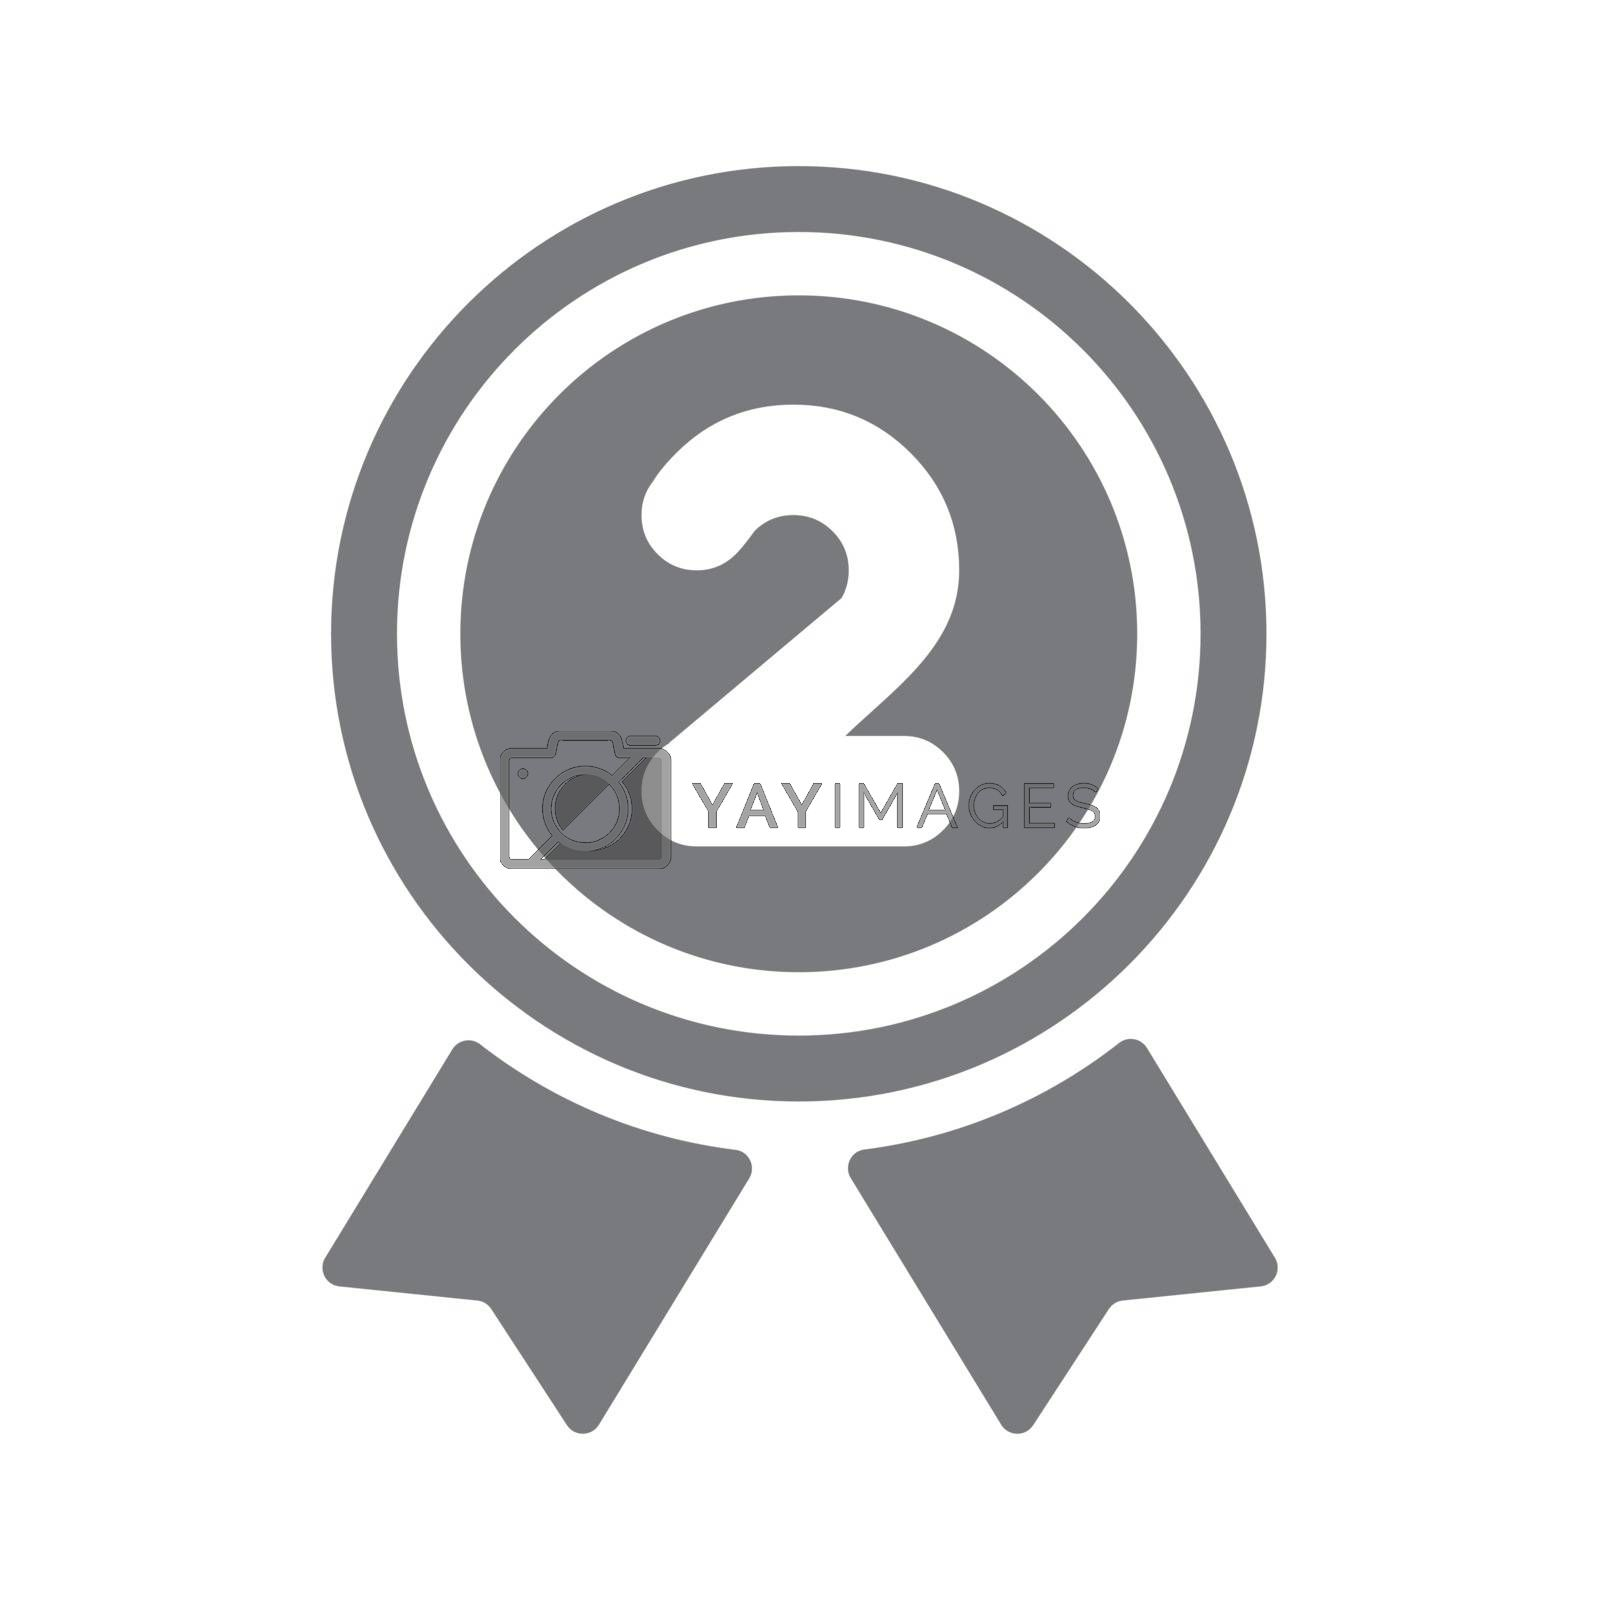 ranking medal icon illustration. 2nd place (silver).